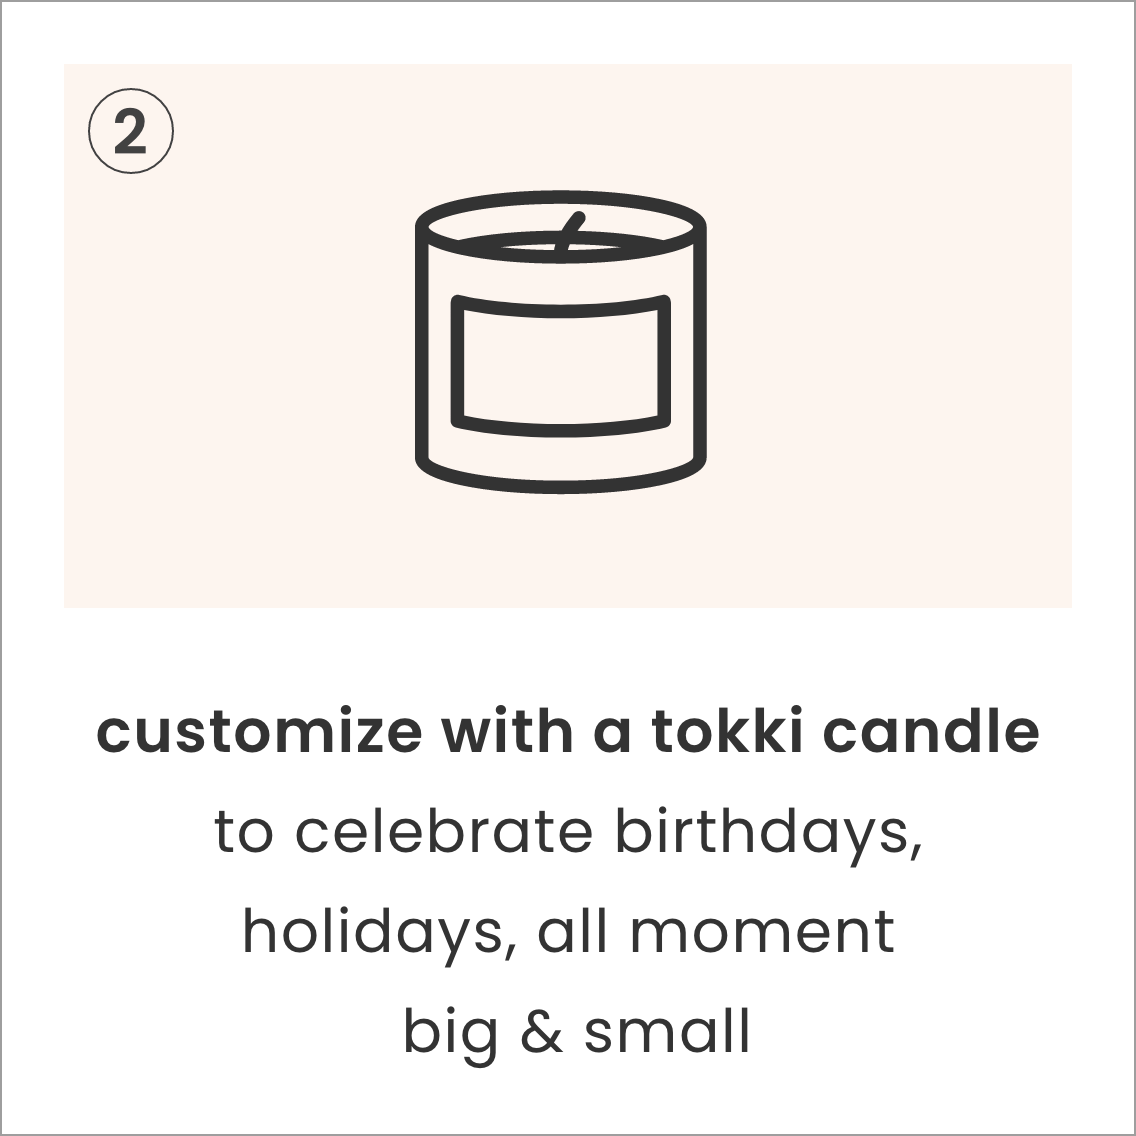 customize with a tokki candle